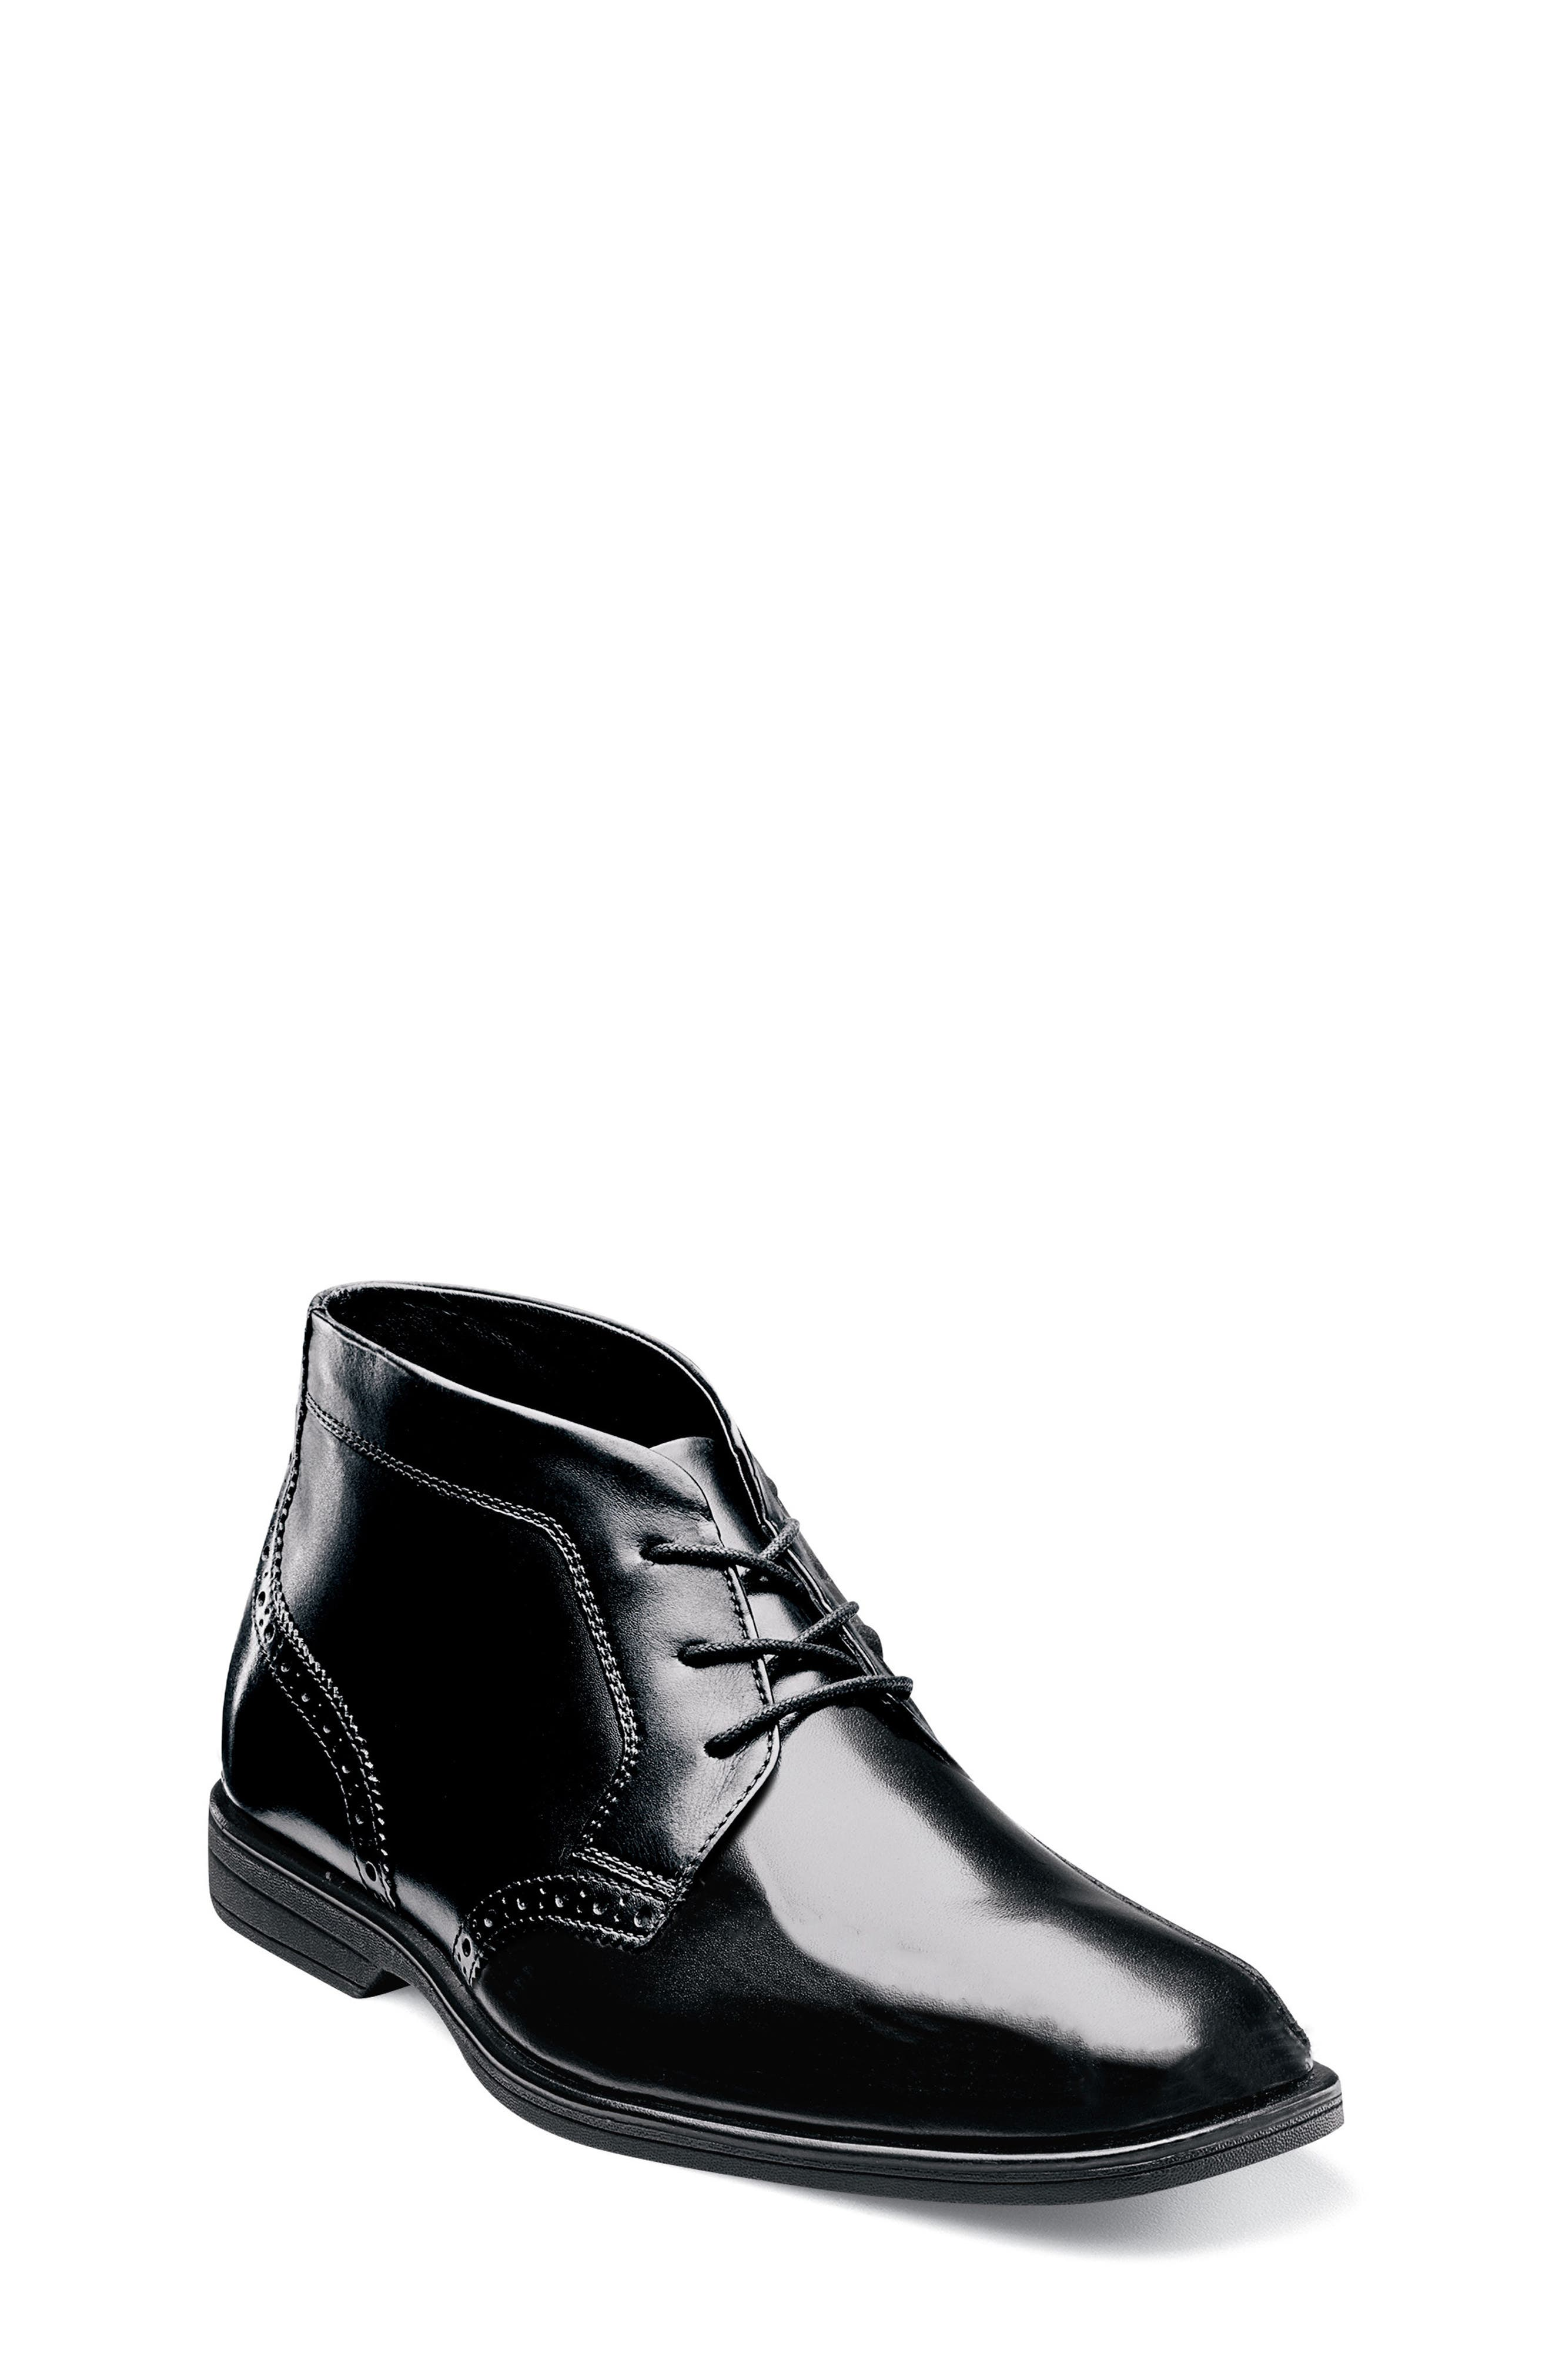 'Reveal' Chukka Boot,                             Main thumbnail 1, color,                             BLACK LEATHER